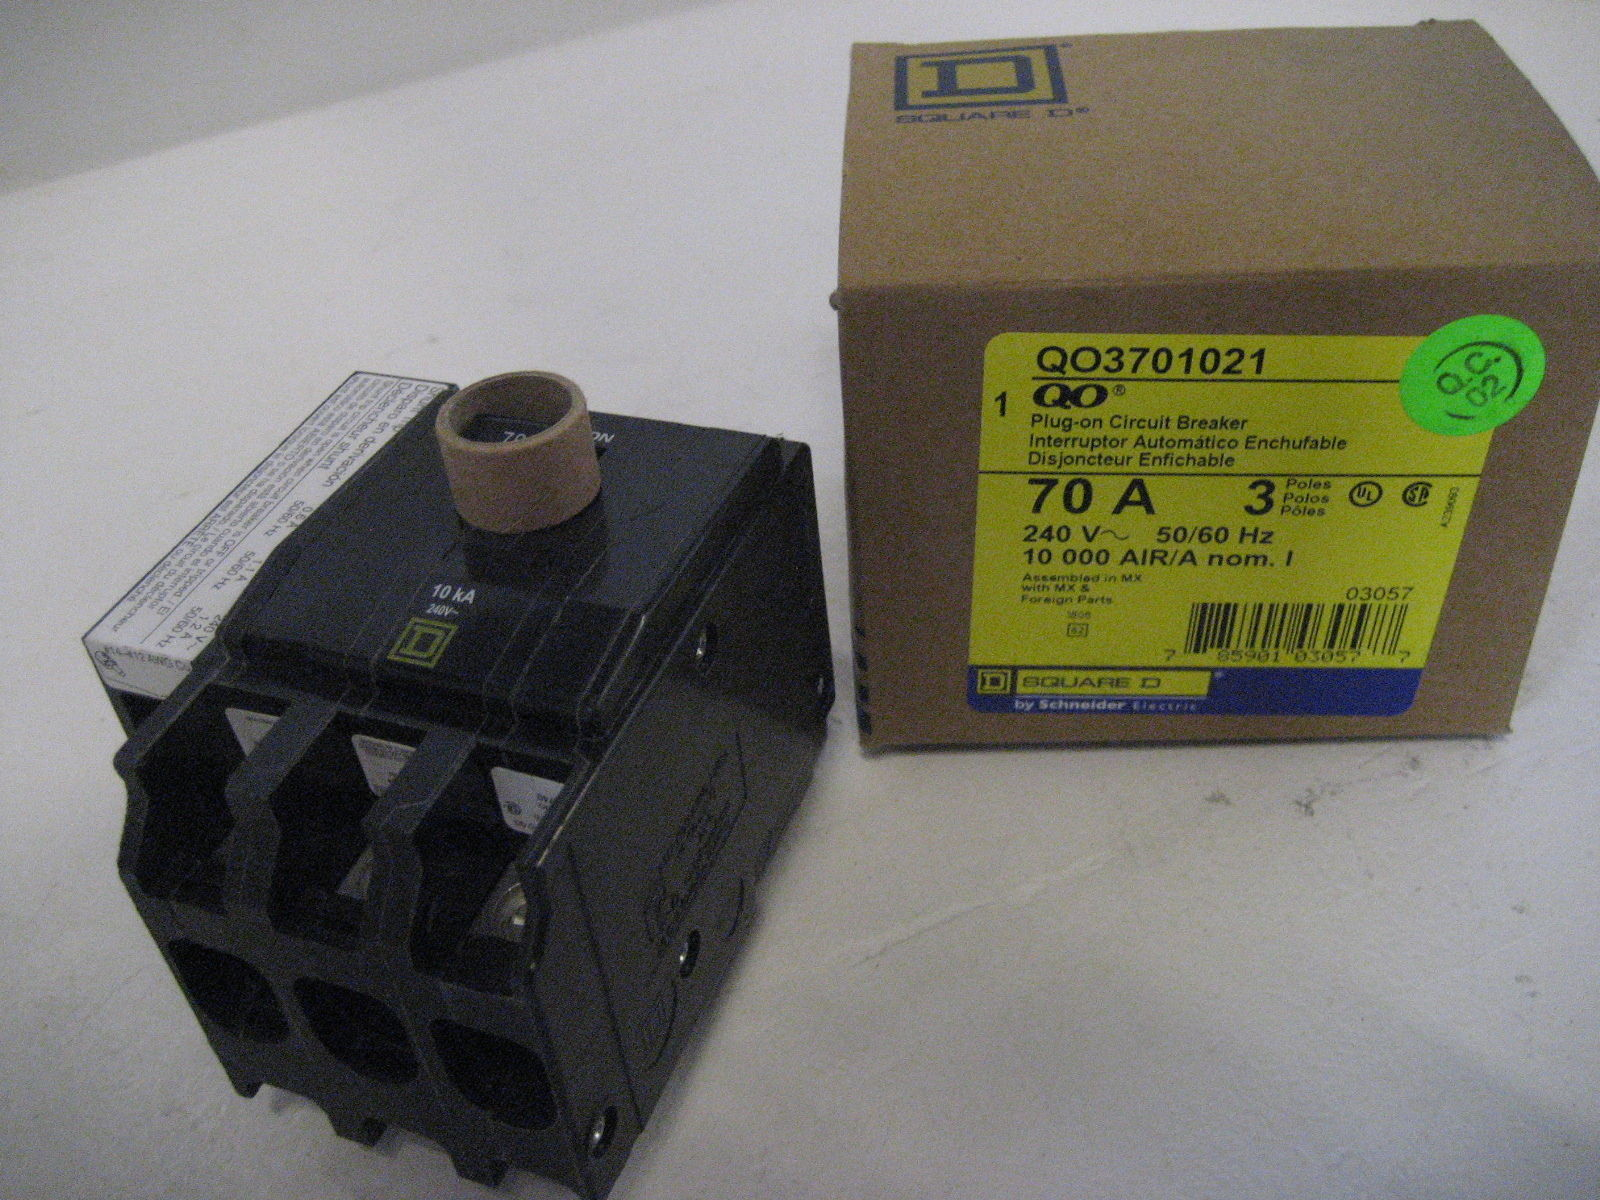 New Square D Shunt Trip Breaker Qo3701021 3 Pole 70 Amp How Do Breakers Work